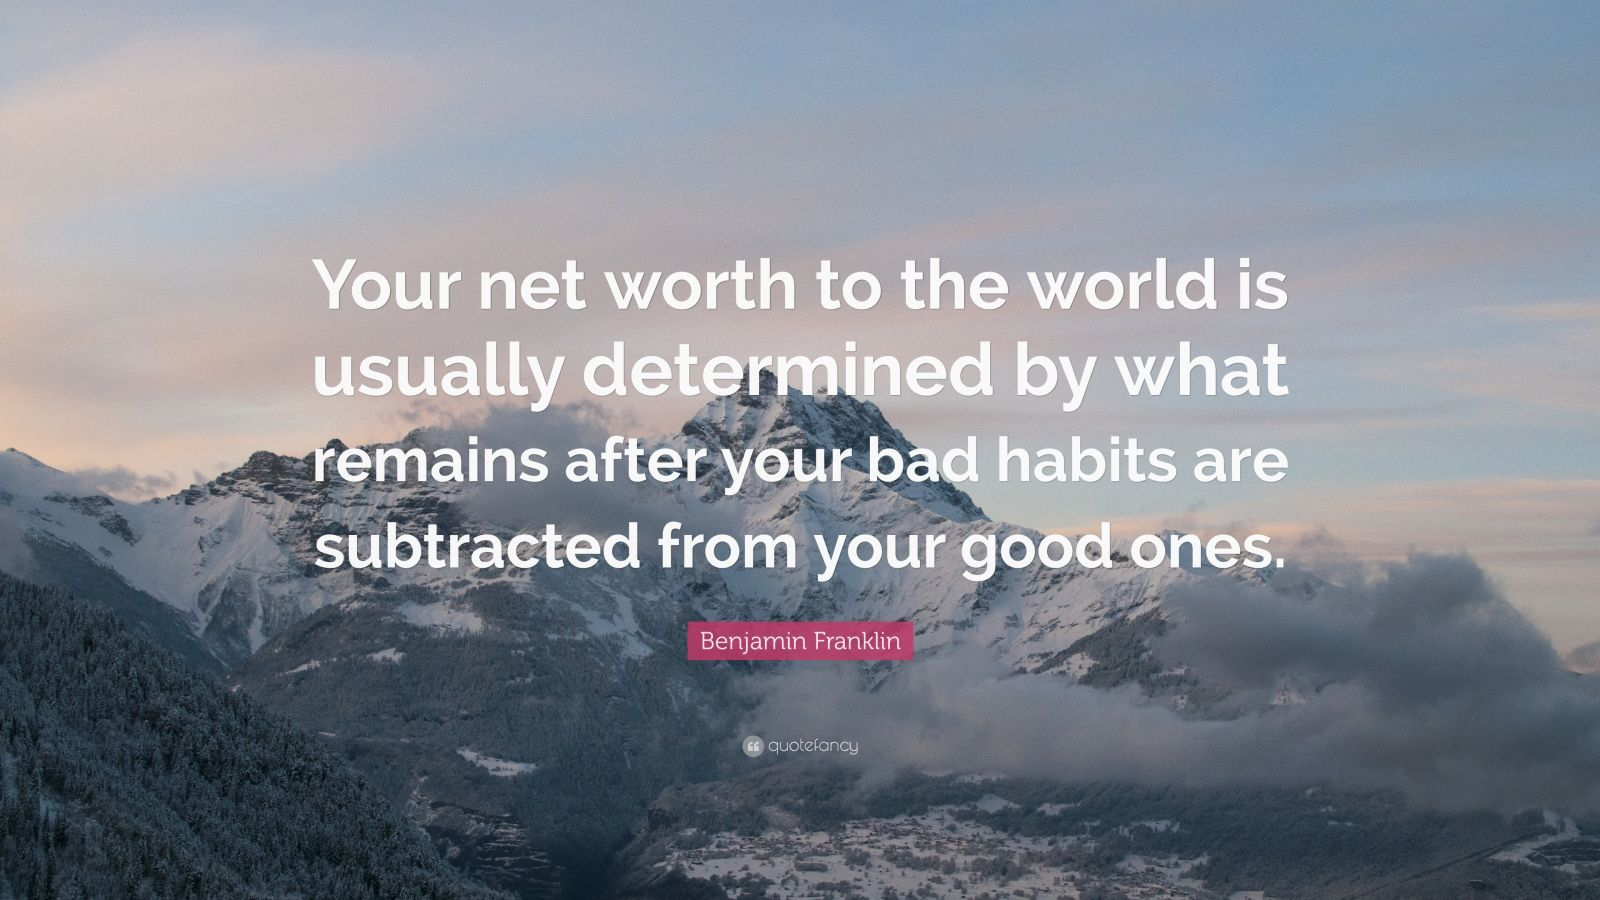 """Benjamin Franklin Quote: """"Your net worth to the world is usually determined by what remains after your bad habits are subtracted from your good ones."""""""